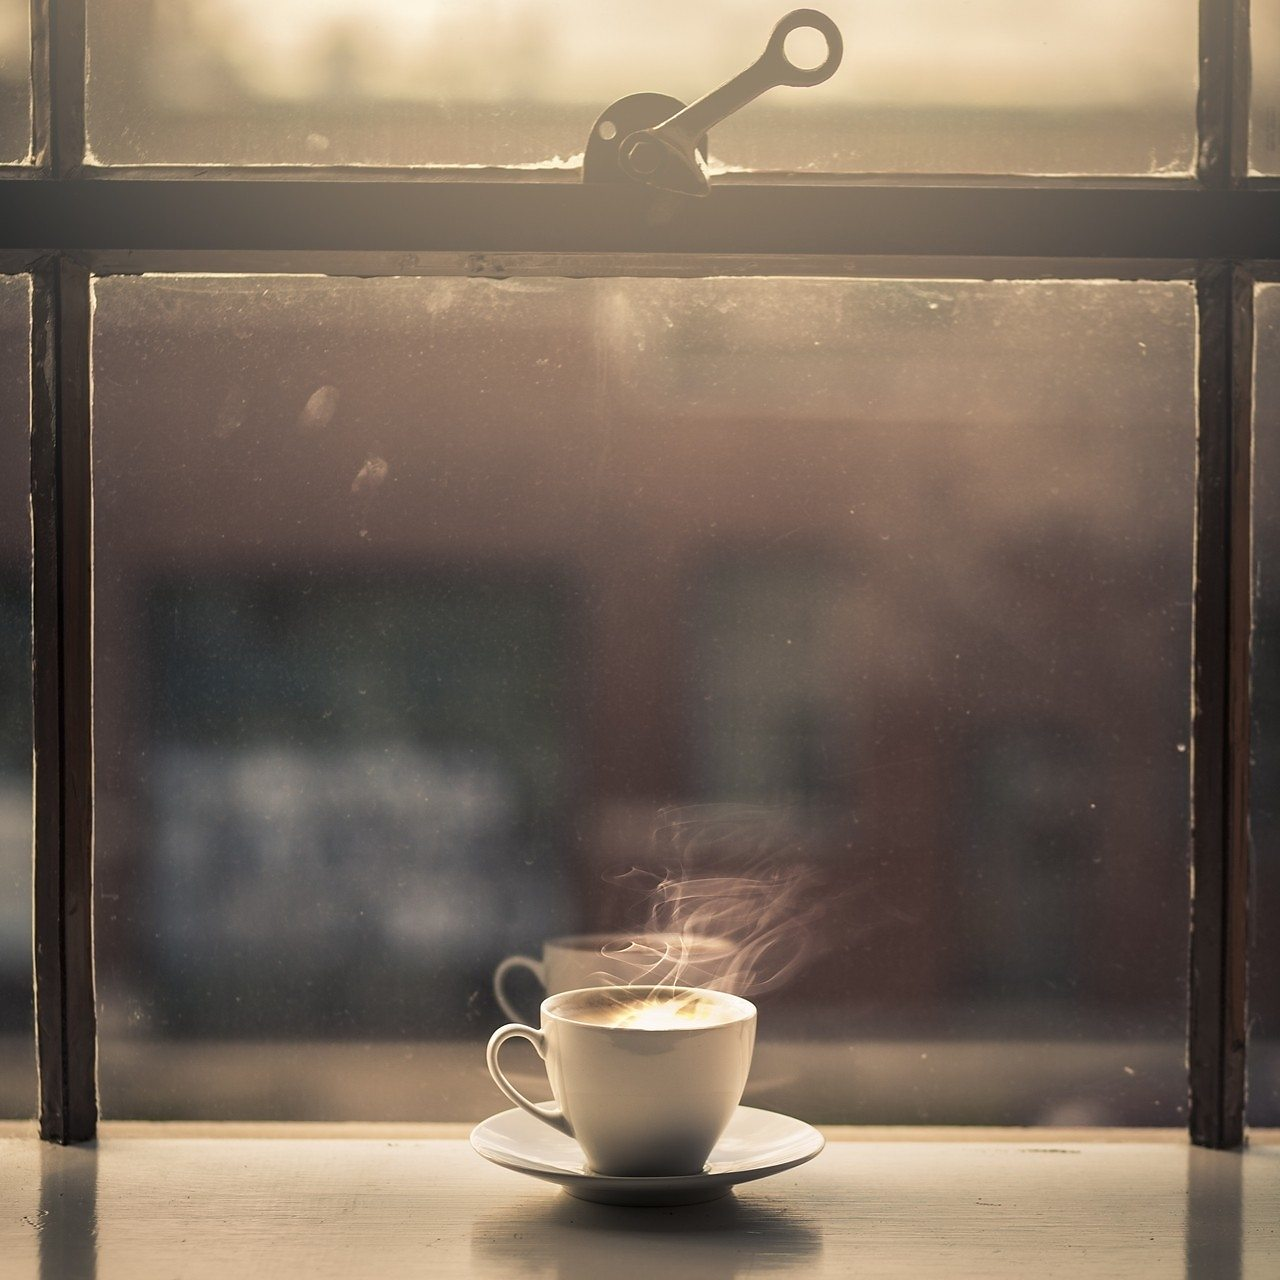 Hot cup of coffee in a sunny window.